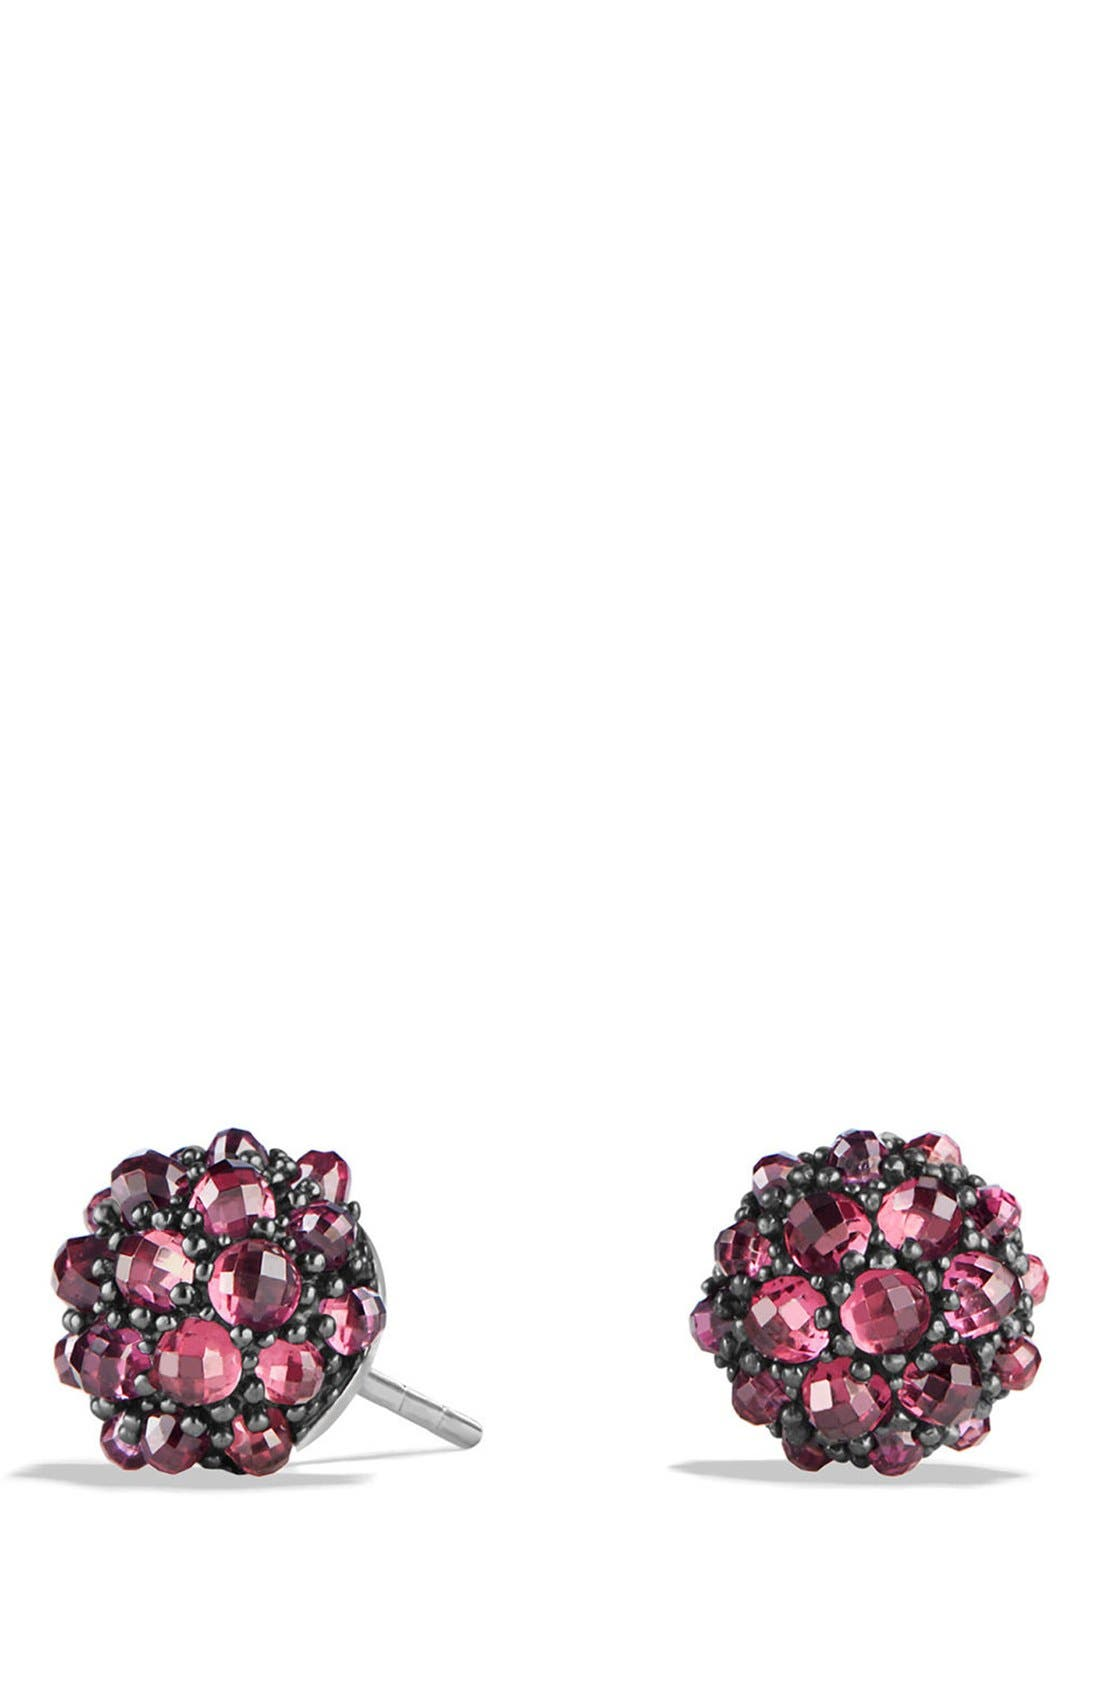 David Yurman Osetra Stud Earrings